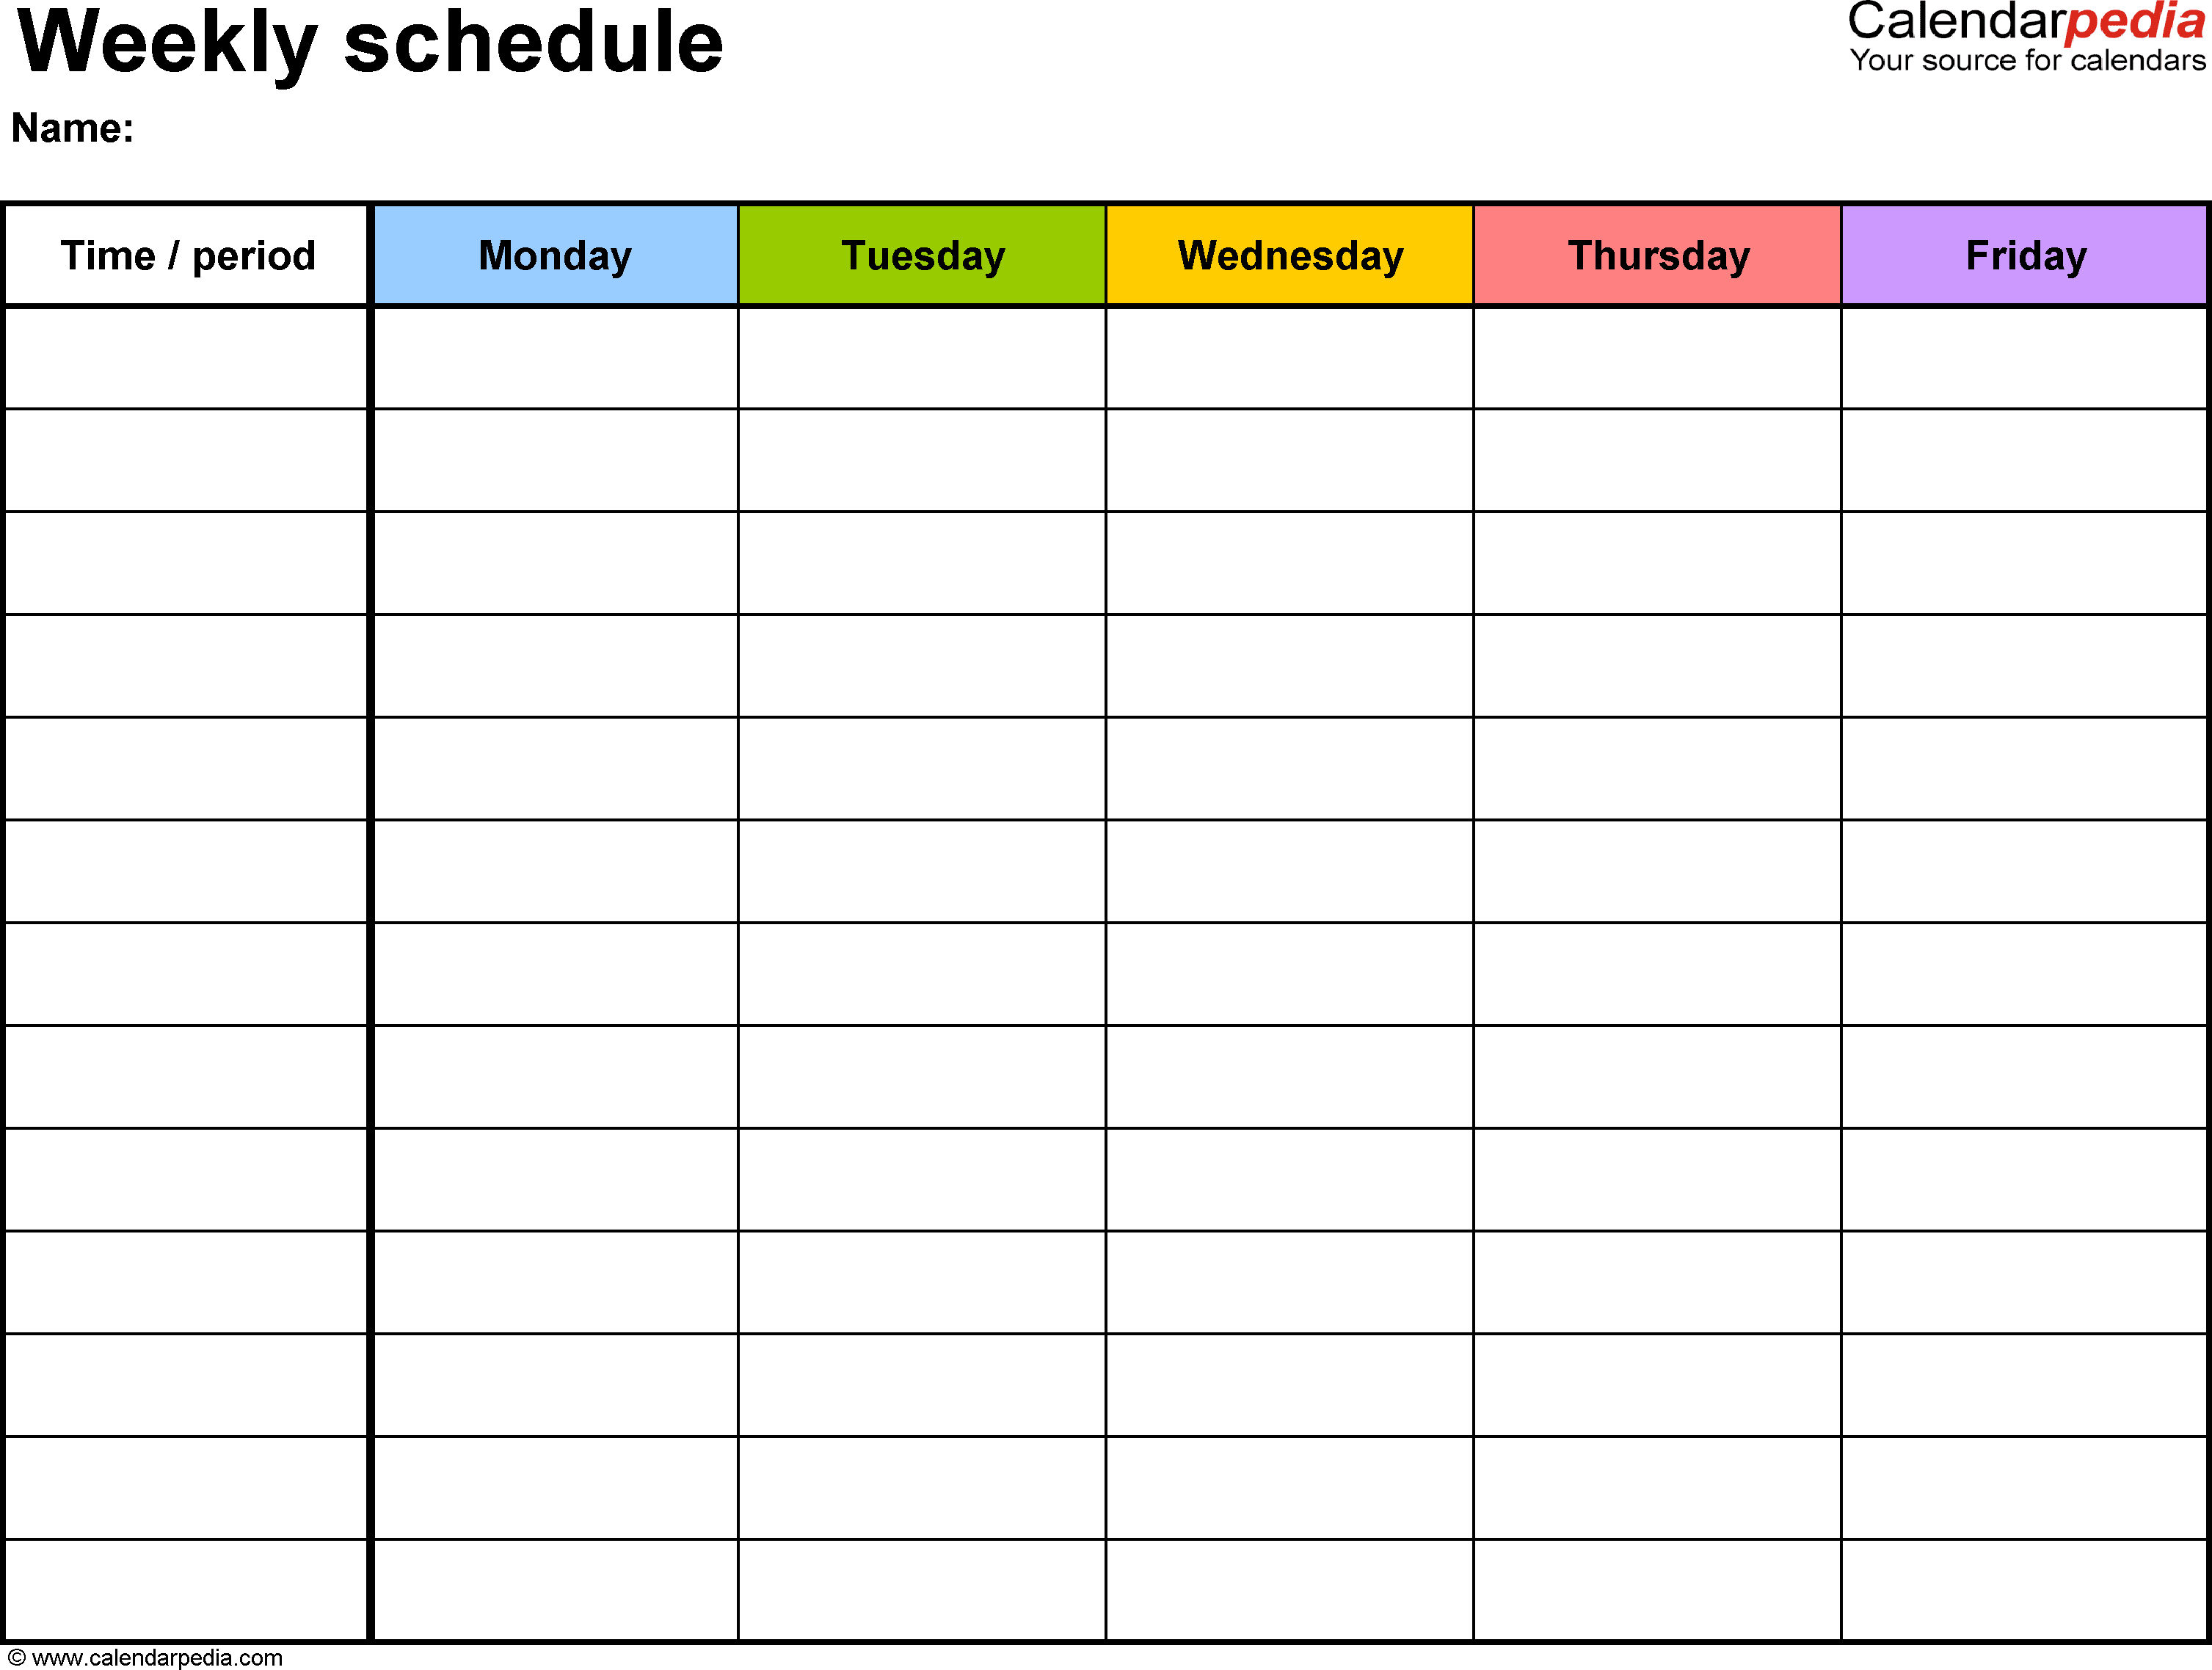 Free Weekly Schedule Templates For Excel - 18 Templates in Blank Calendar Of Events Template